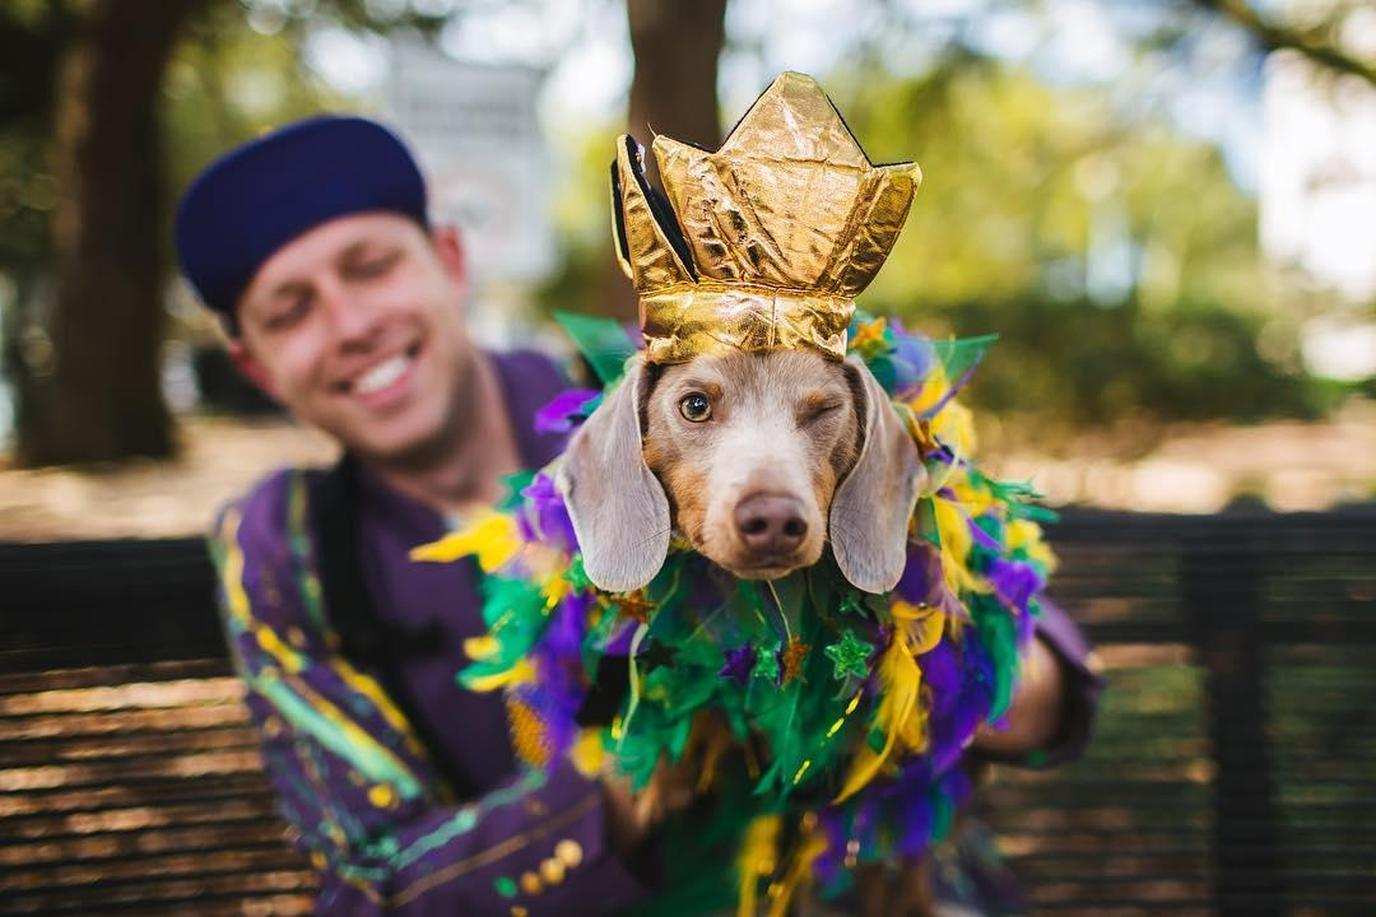 A Costumed Dog Welcomes You to Pet-Friendly New Orleans